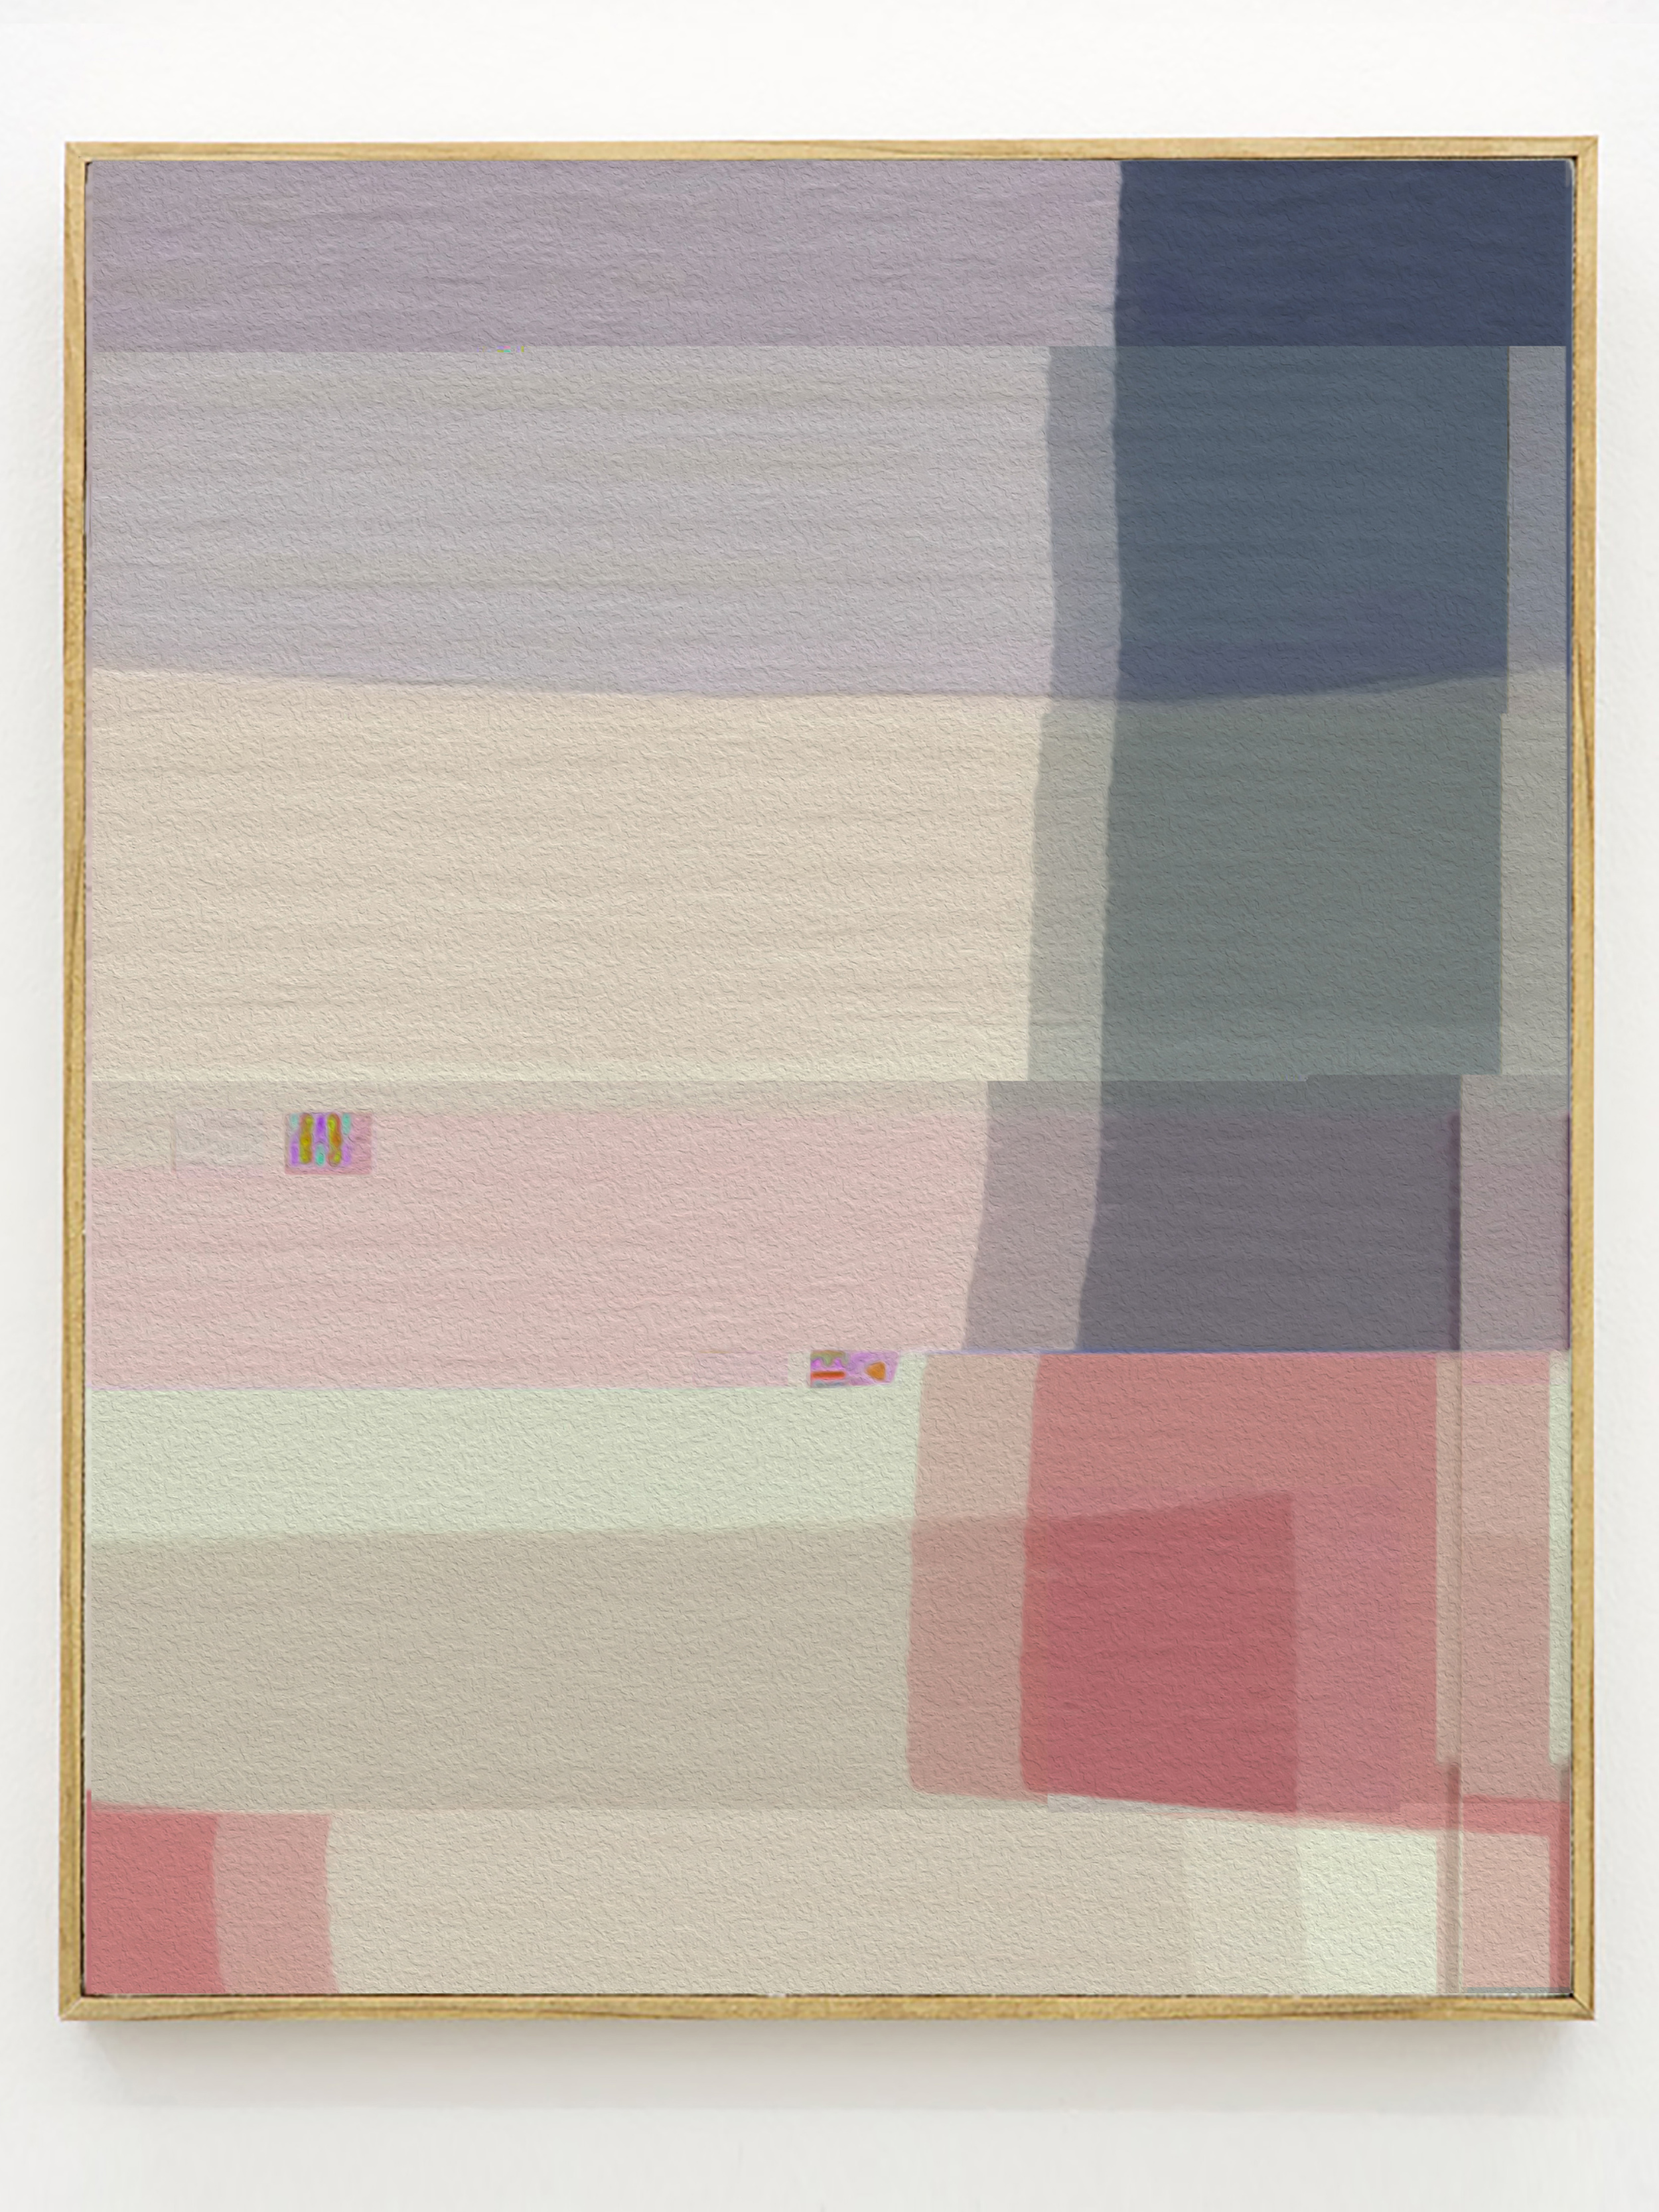 GLITCH QUILT #3   digital print on cotton broadcloth   12 x 16 inches, 2014